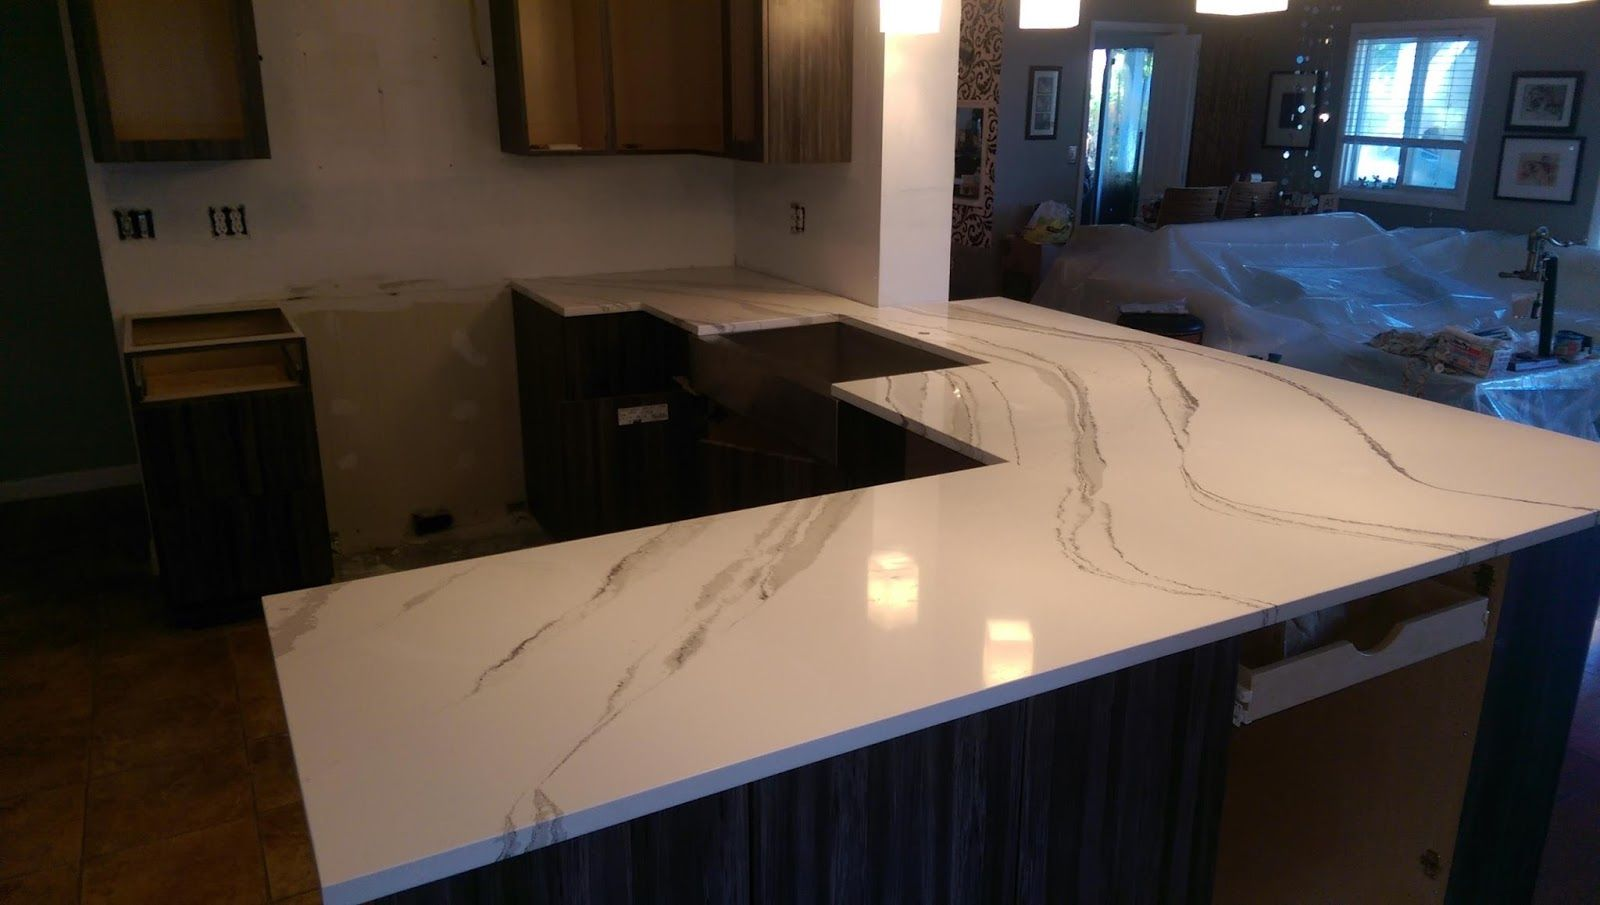 Cost Of Quartz Countertops Installed Empire Surfaces New Cambria Britannica Counter Tops